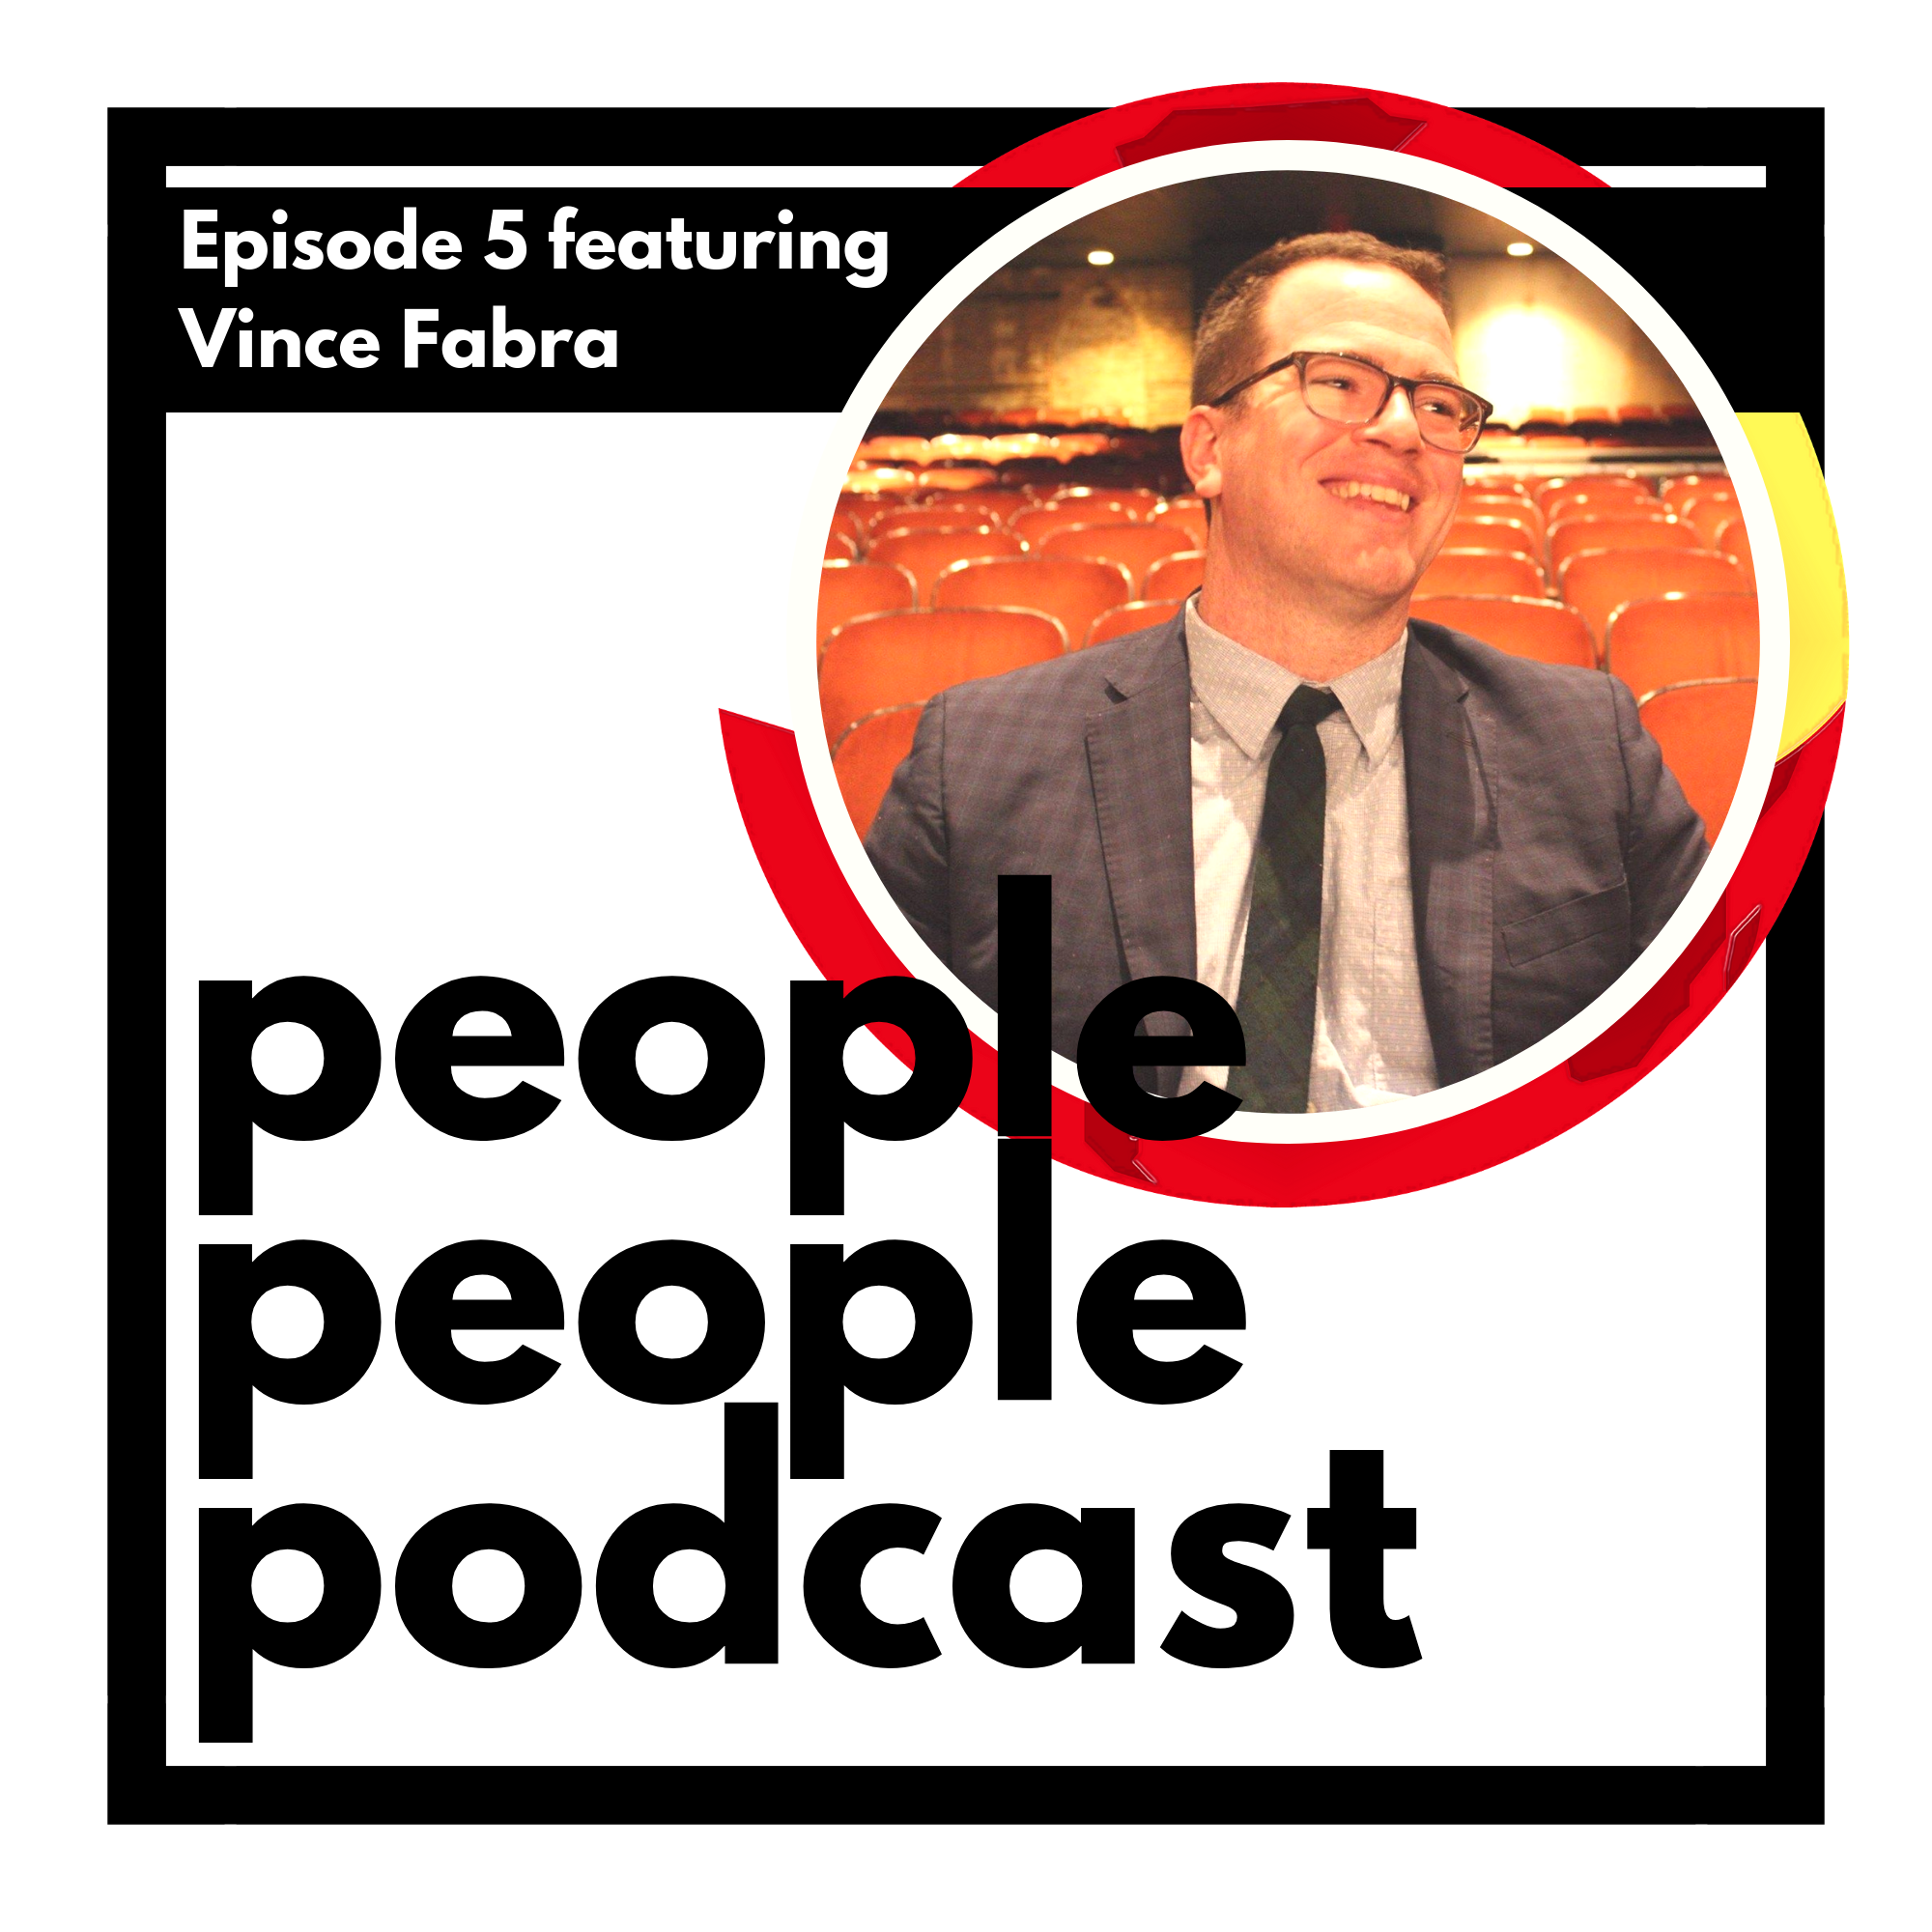 people people podcast (7).png